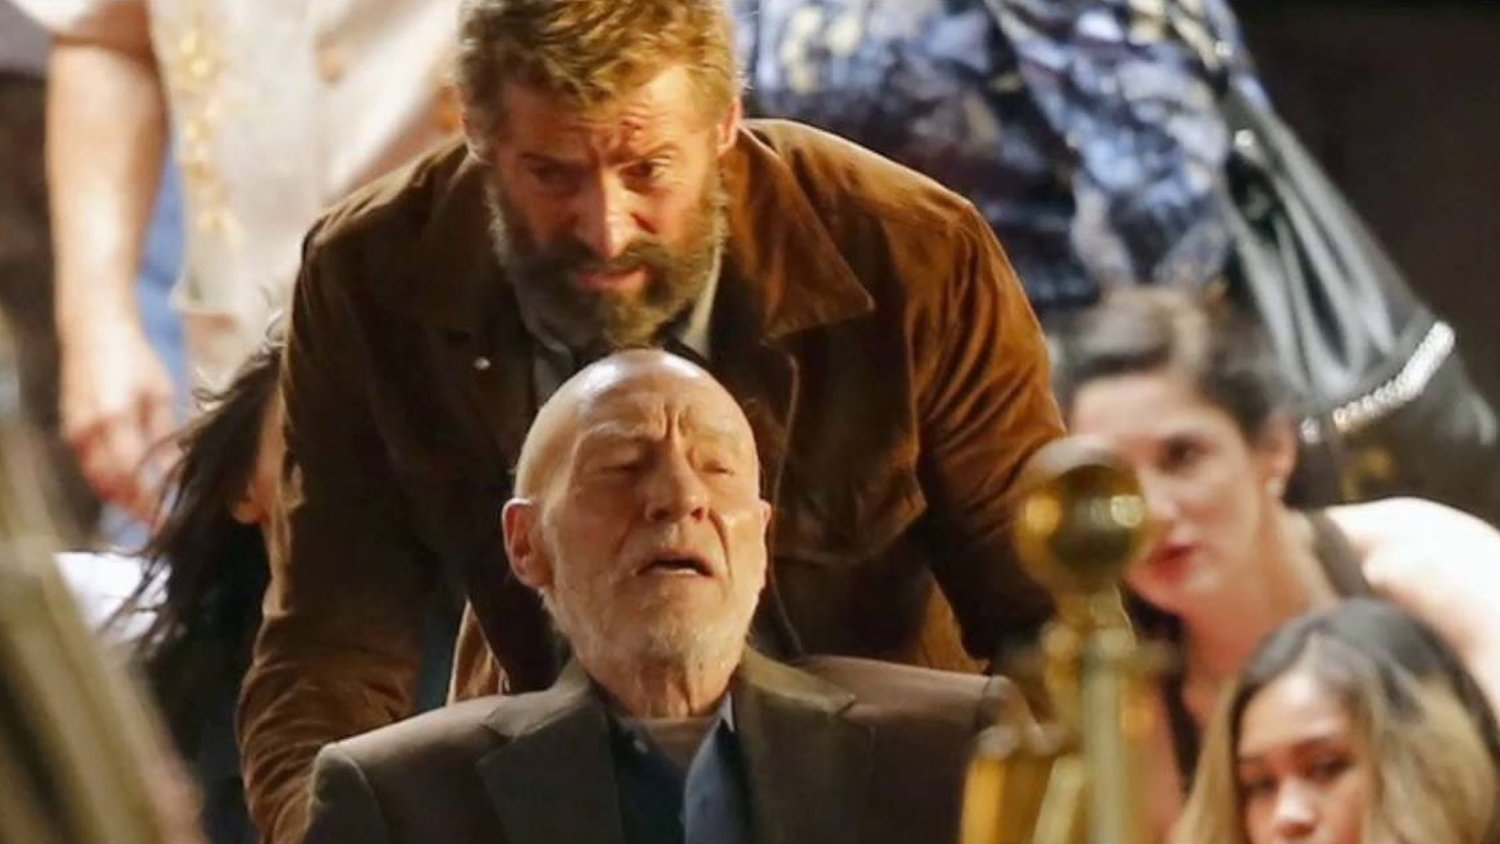 LOGAN Director James Mangold Offers Insight on Why the Westchester Incident Was Cut From the Film